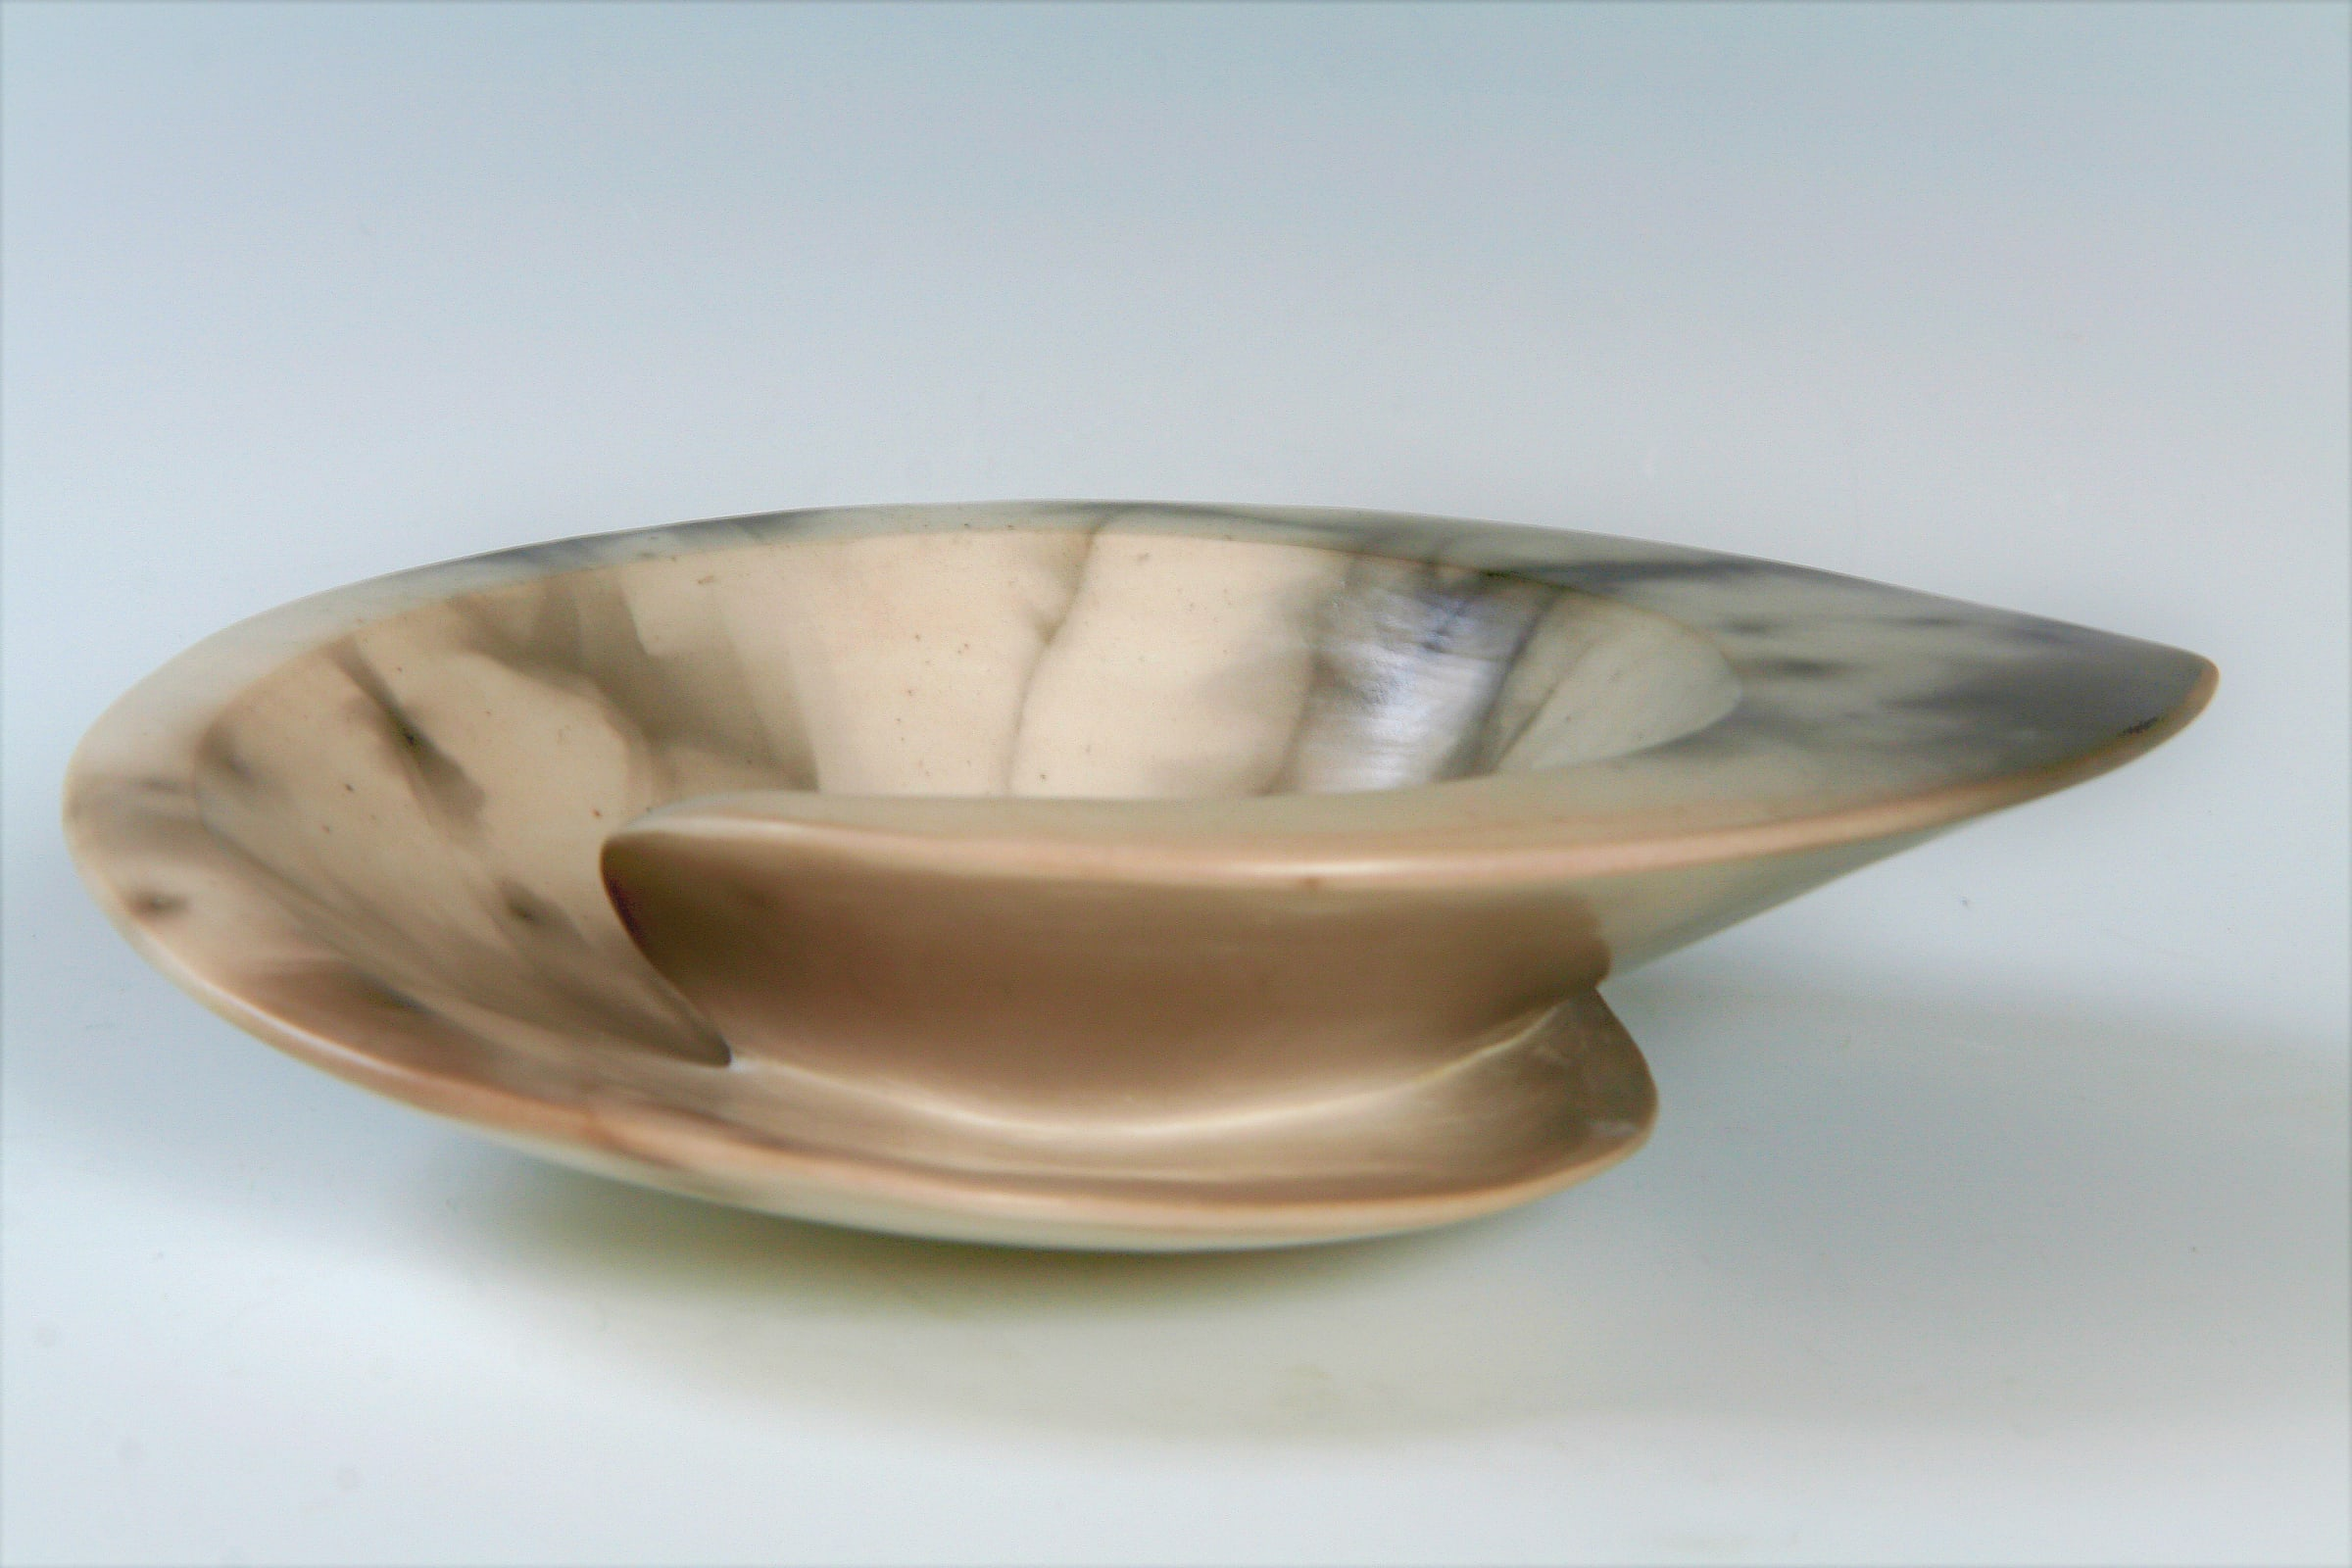 """<span class=""""link fancybox-details-link""""><a href=""""/artists/38-antonia-salmon/works/6440-antonia-salmon-dervish-bowl-2019/"""">View Detail Page</a></span><div class=""""artist""""><strong>Antonia Salmon</strong></div> b. 1959 <div class=""""title""""><em>Dervish Bowl</em>, 2019</div> <div class=""""medium"""">Stoneware</div><div class=""""copyright_line"""">Copyright The Artist</div>"""